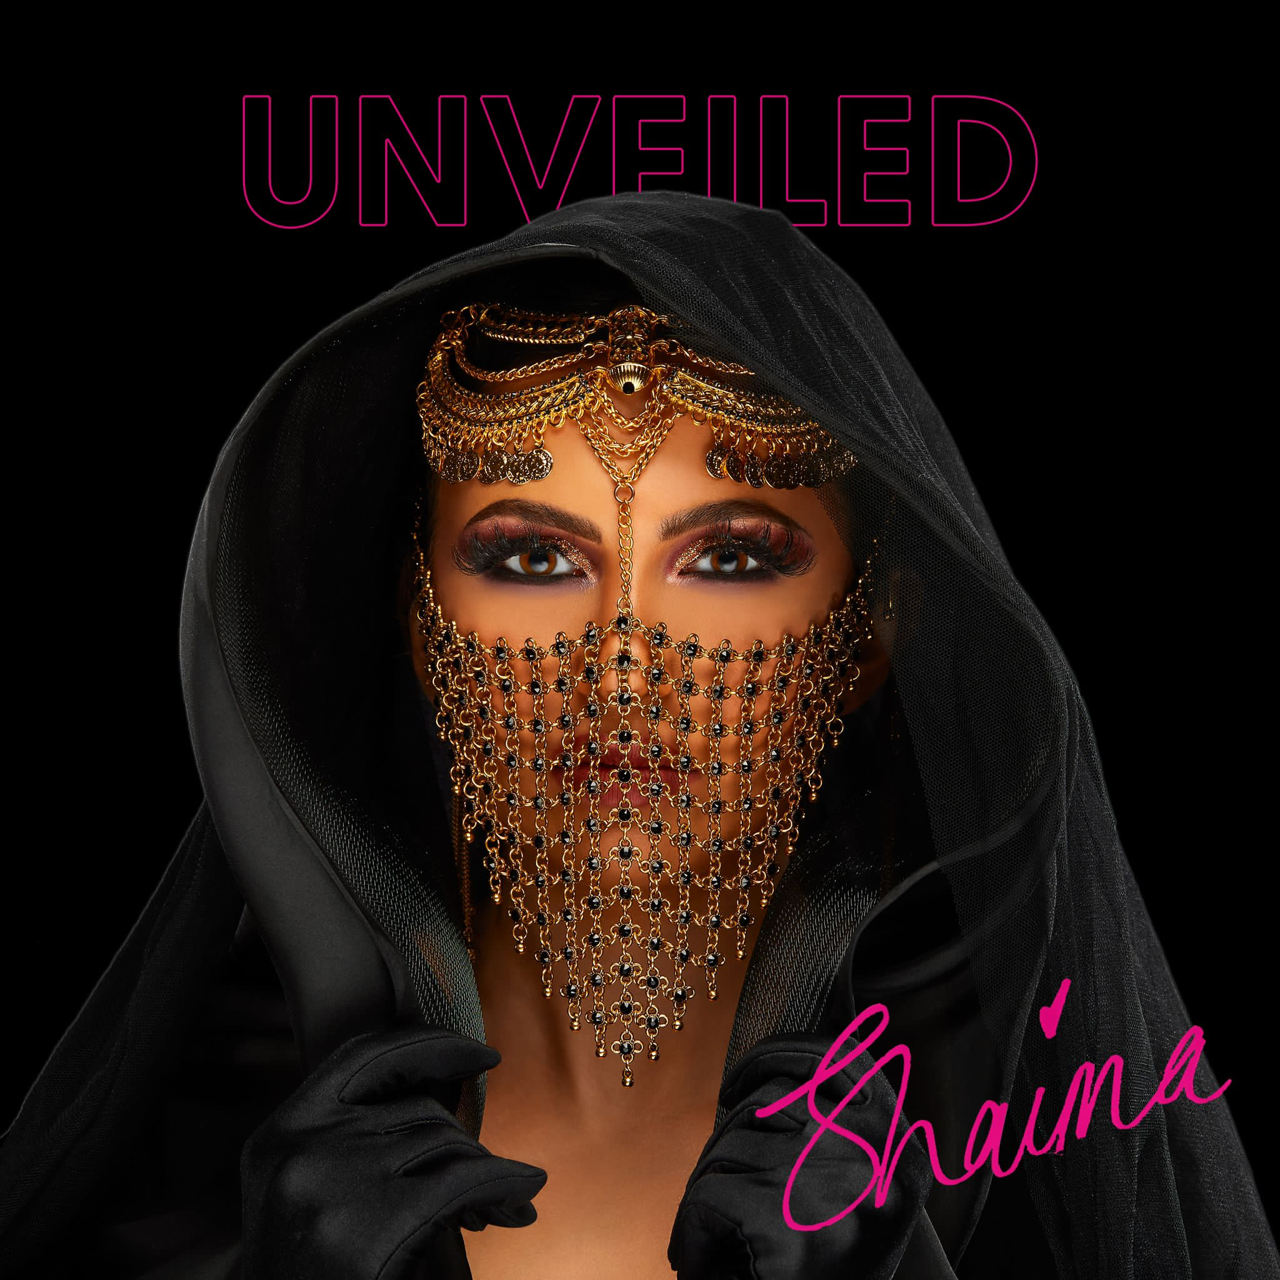 """Pop Singer Shaima Ready To Be """"UNVEILED"""" - The artist's new 7-song EP reflects her multicultural background"""